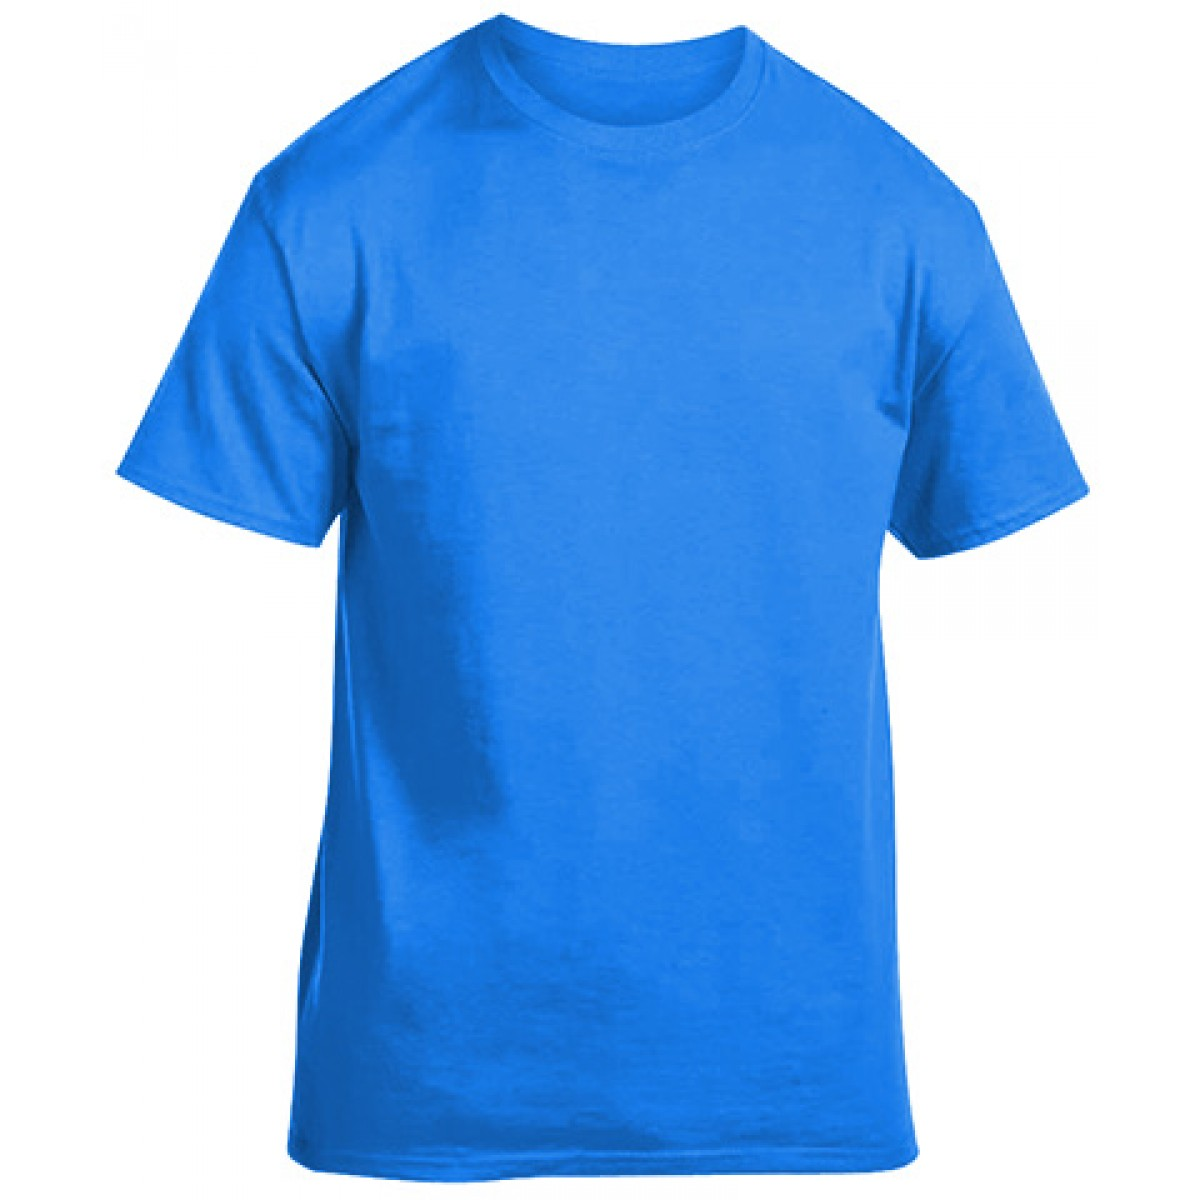 Soft 100% Cotton T-Shirt-Neon Blue-L